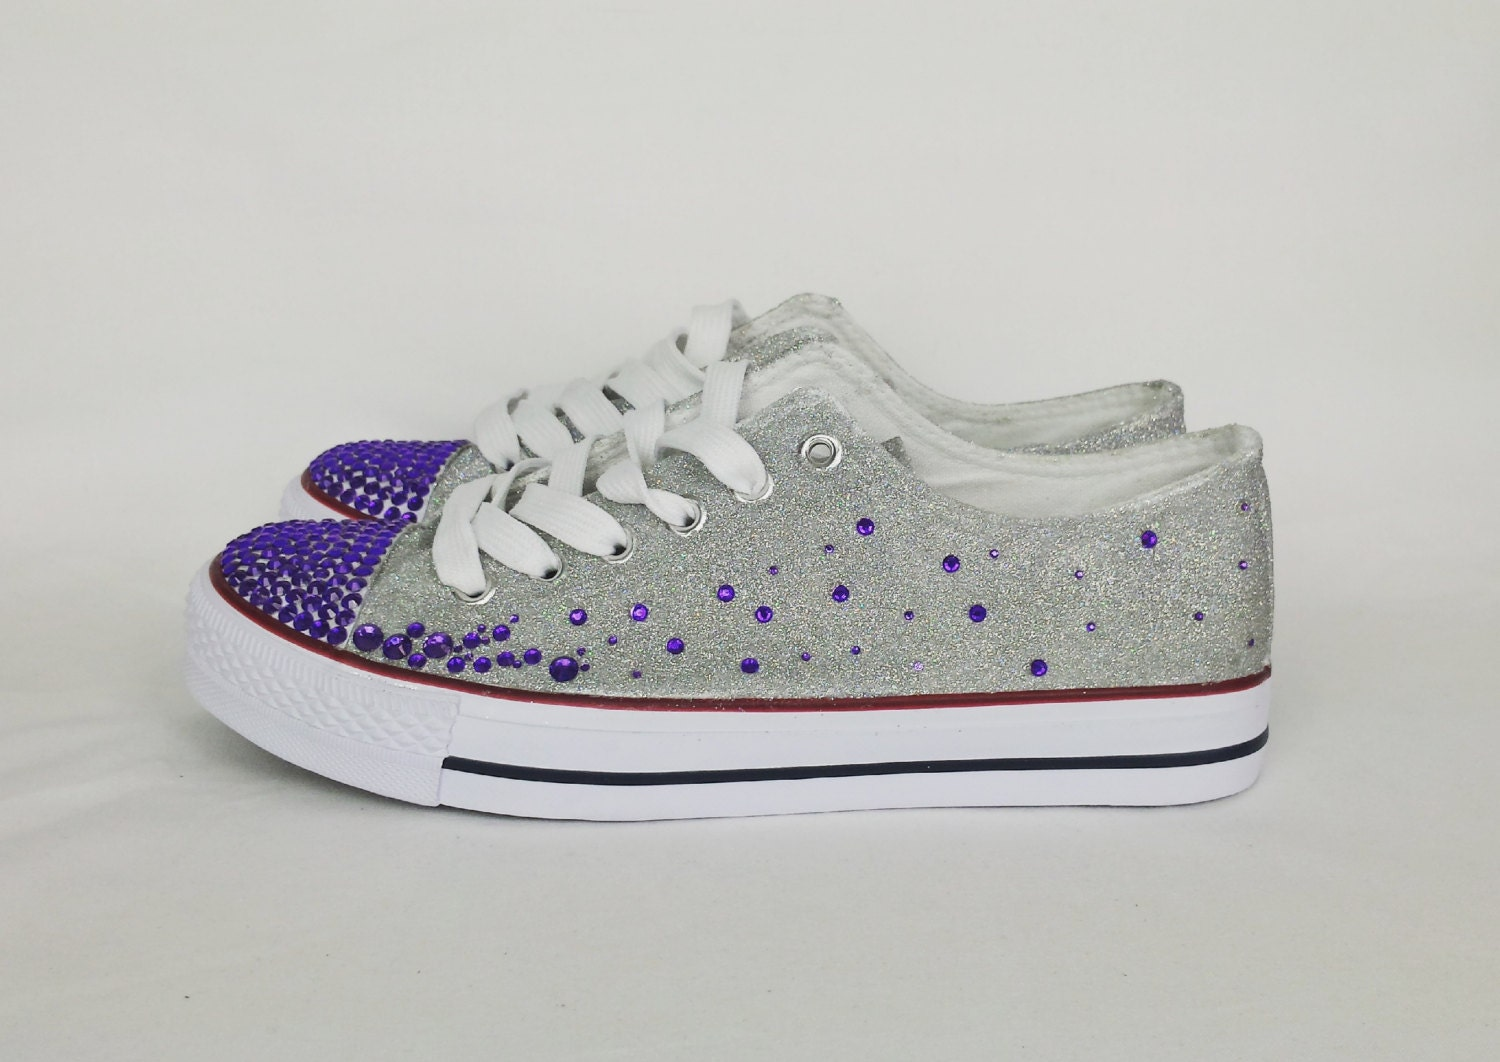 Silver Glitter Bridal Shoes Bling Sneakers Wedding Converse